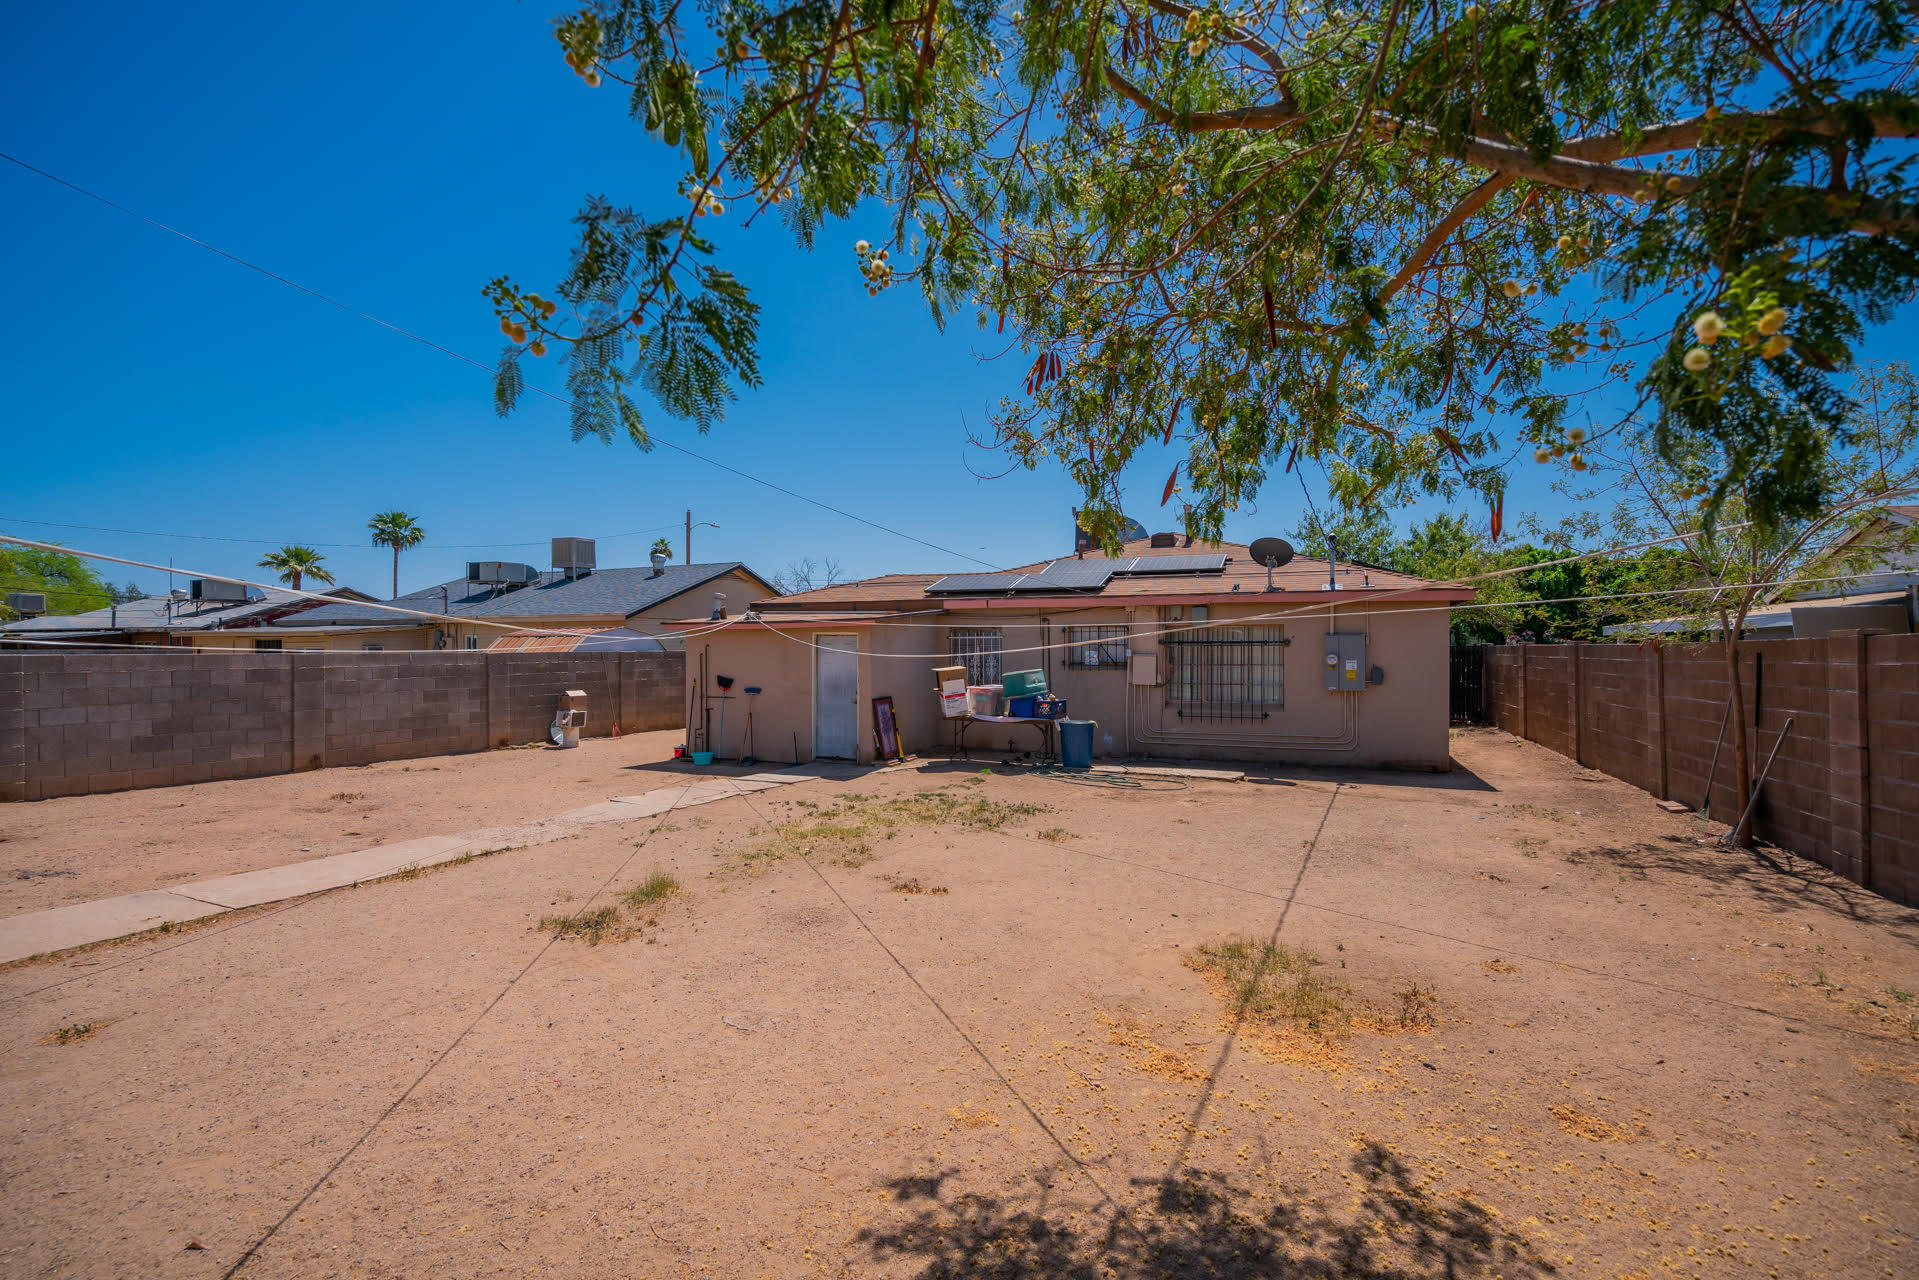 2030 MONTE VISTA Road, Phoenix, Arizona 85009, 3 Bedrooms Bedrooms, ,1 BathroomBathrooms,Residential,For Sale,MONTE VISTA,6227301